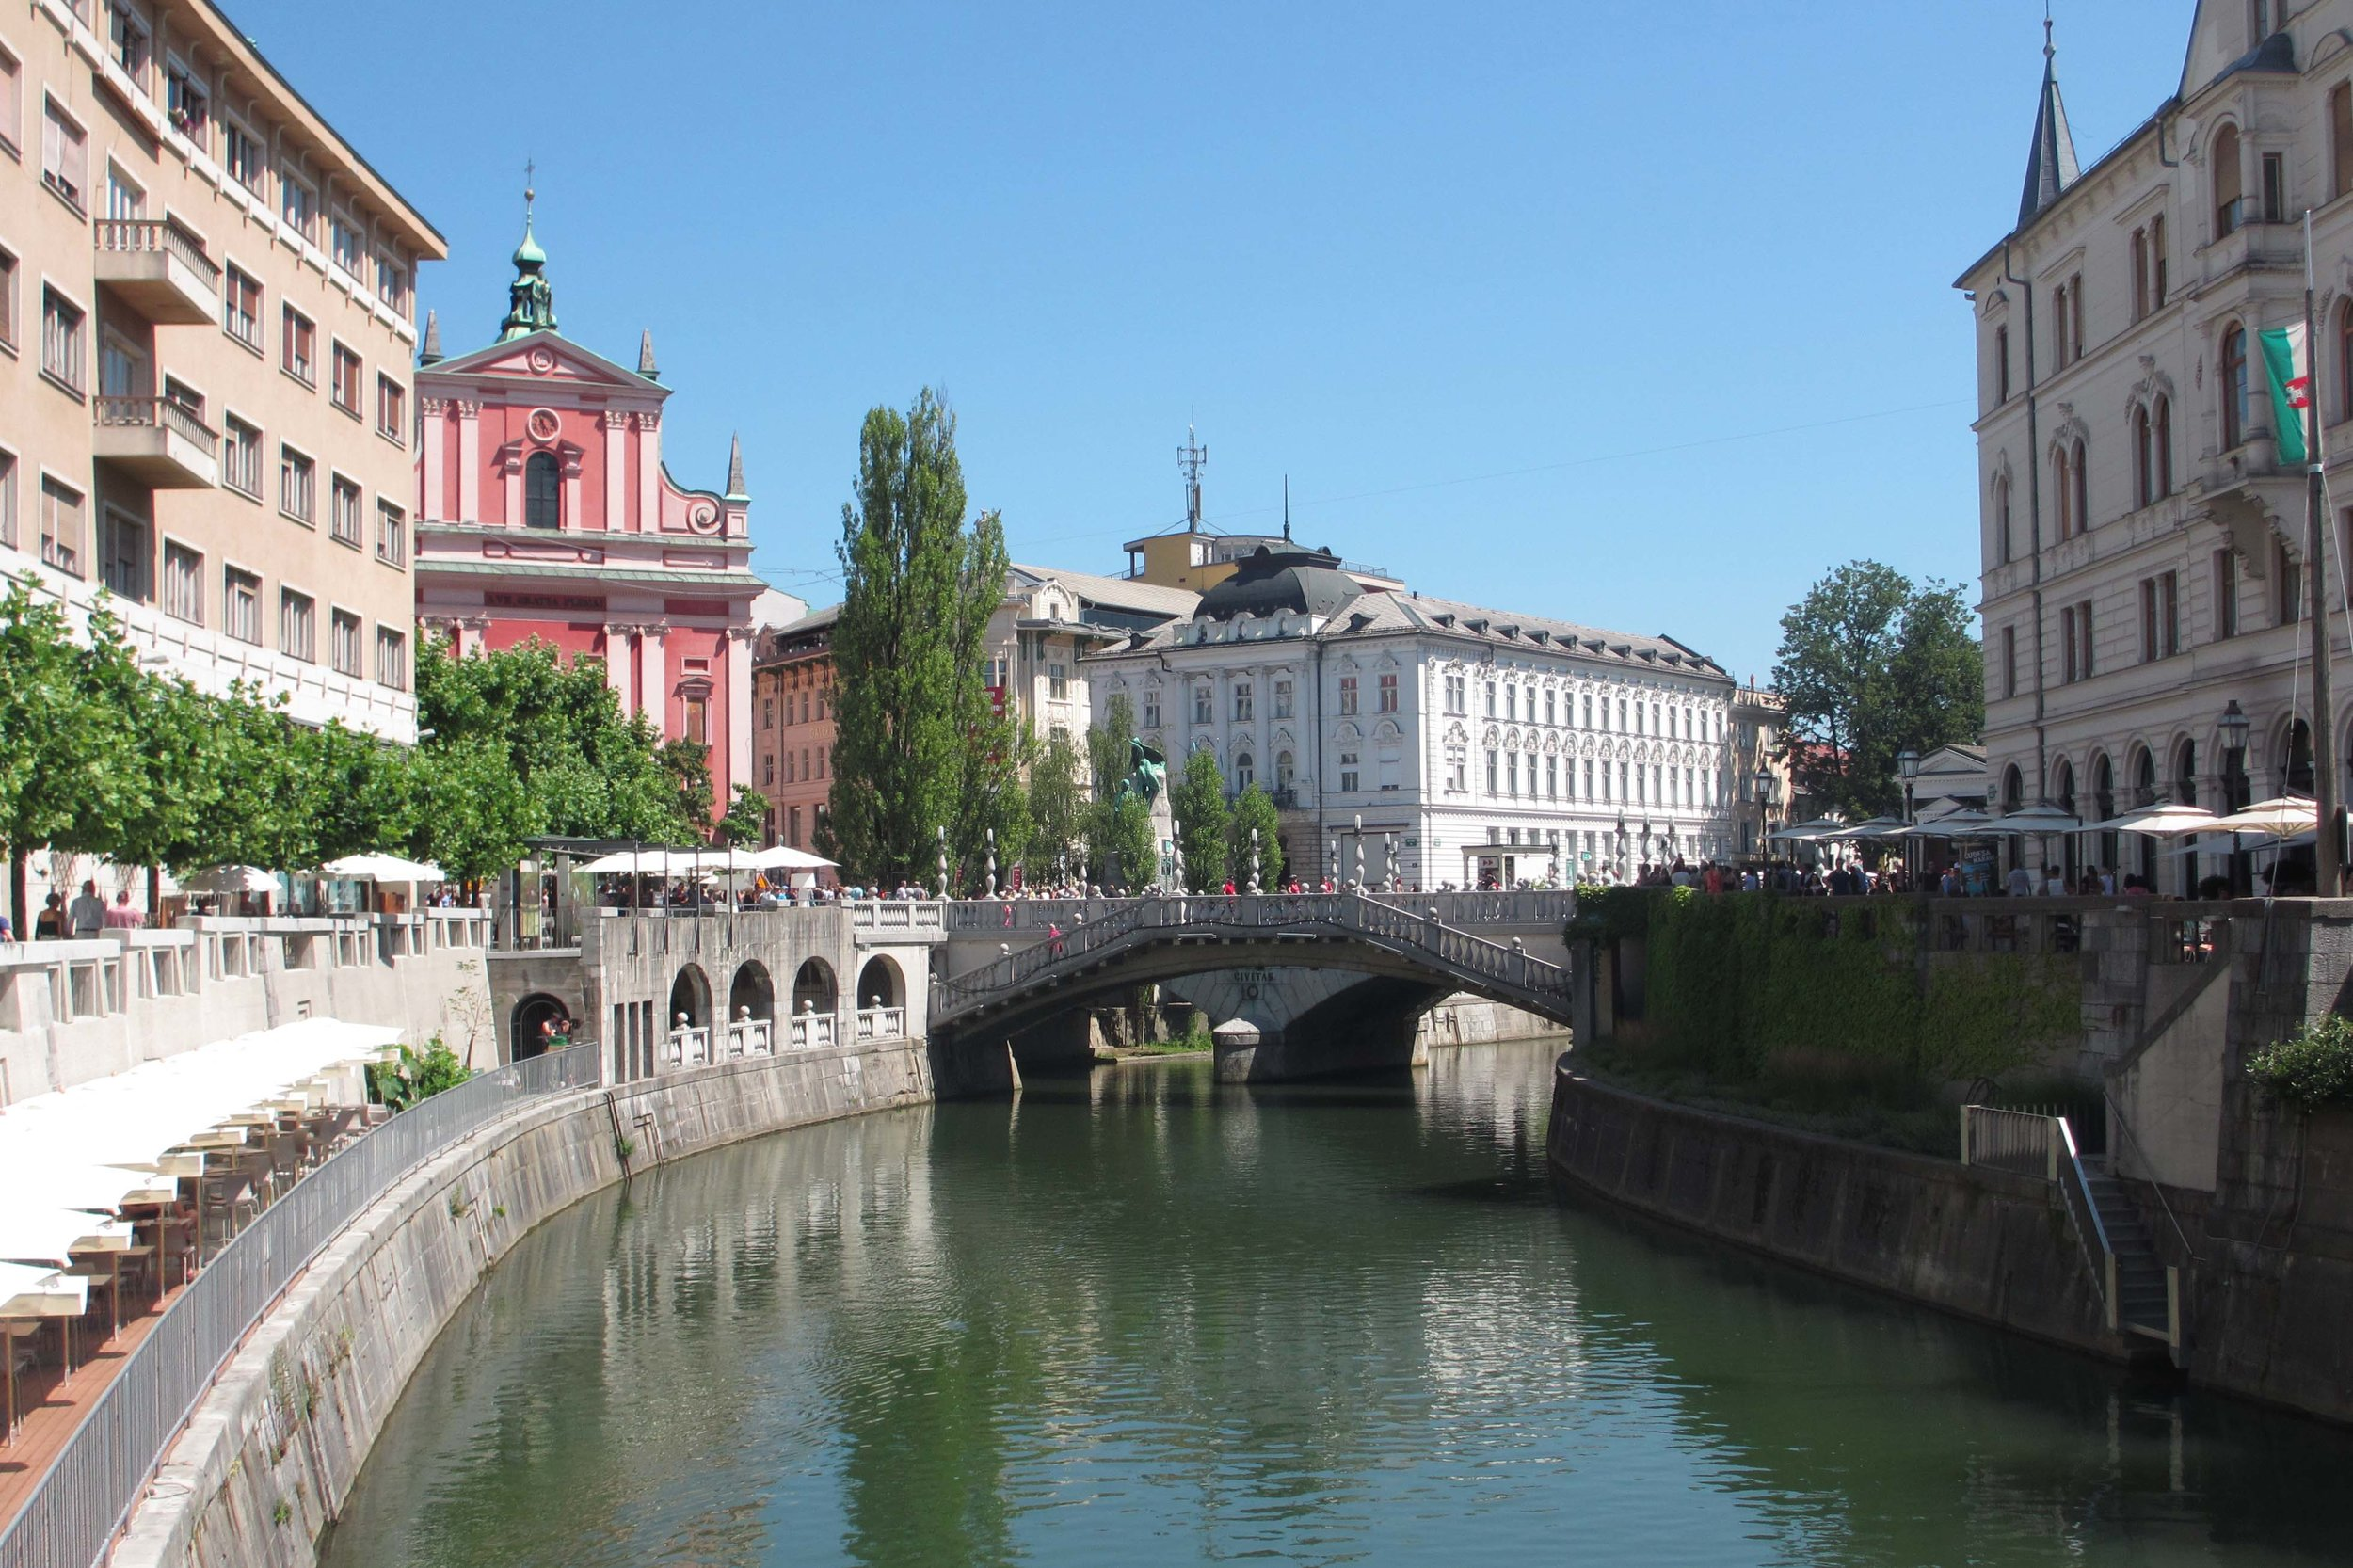 Ljubljana is one of the world;s most walkable cities. Image by Sarah Reid